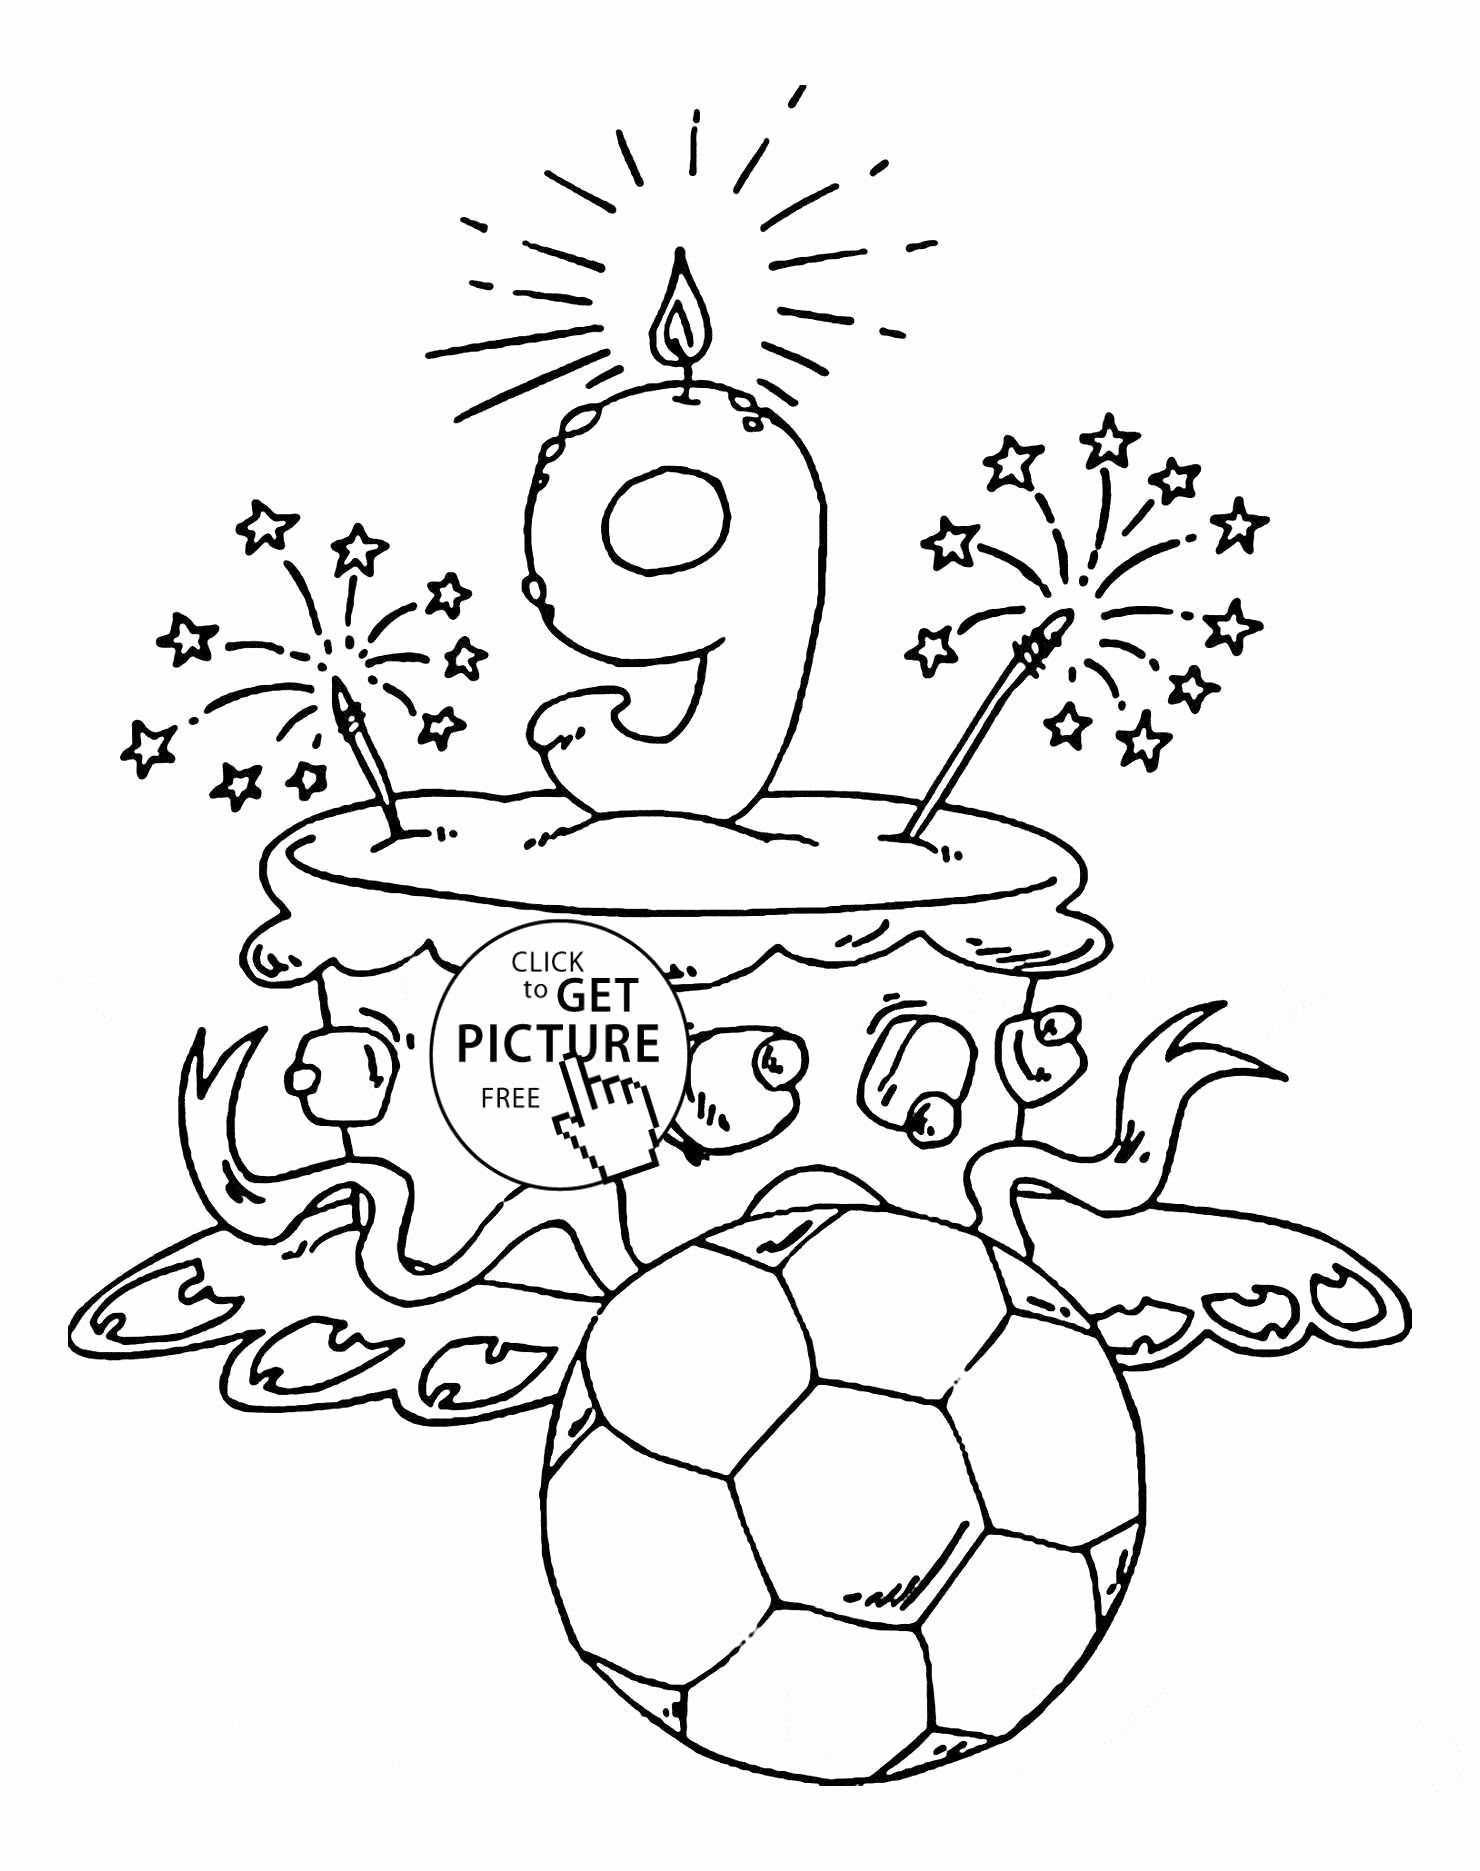 Spiderman Happy Birthday Images Luxury Birthday Coloring Pages Lovely New Spiderm Happy Birthday Coloring Pages Birthday Coloring Pages Coloring Pages For Boys